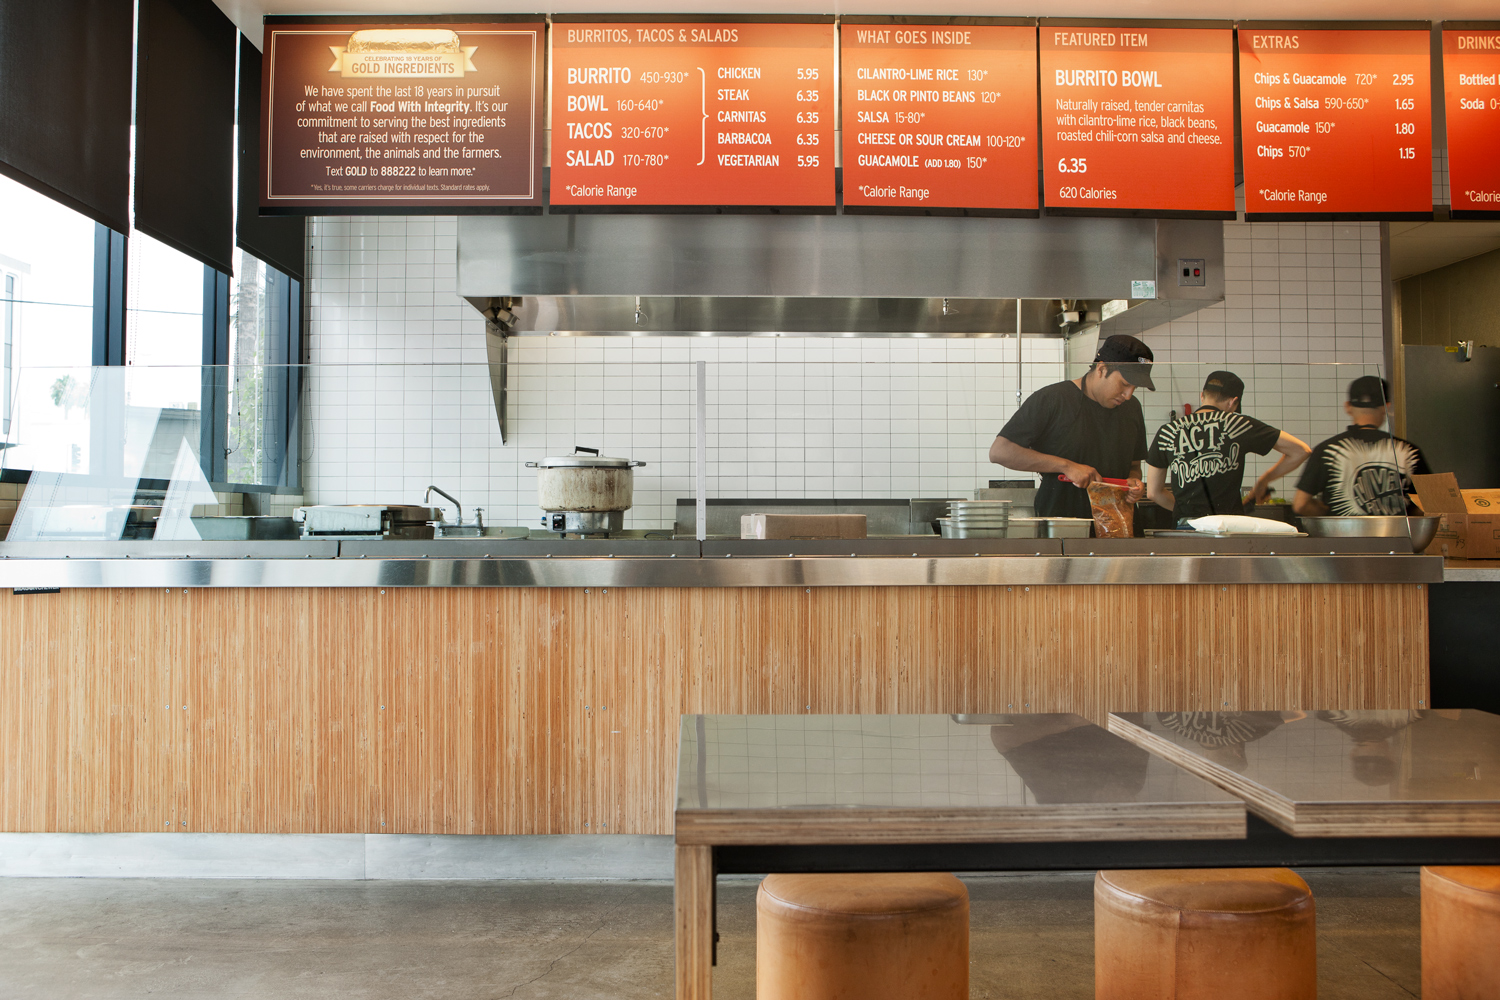 Chipotle launches loyalty program in 3 cities, will expand it nationally in 2019